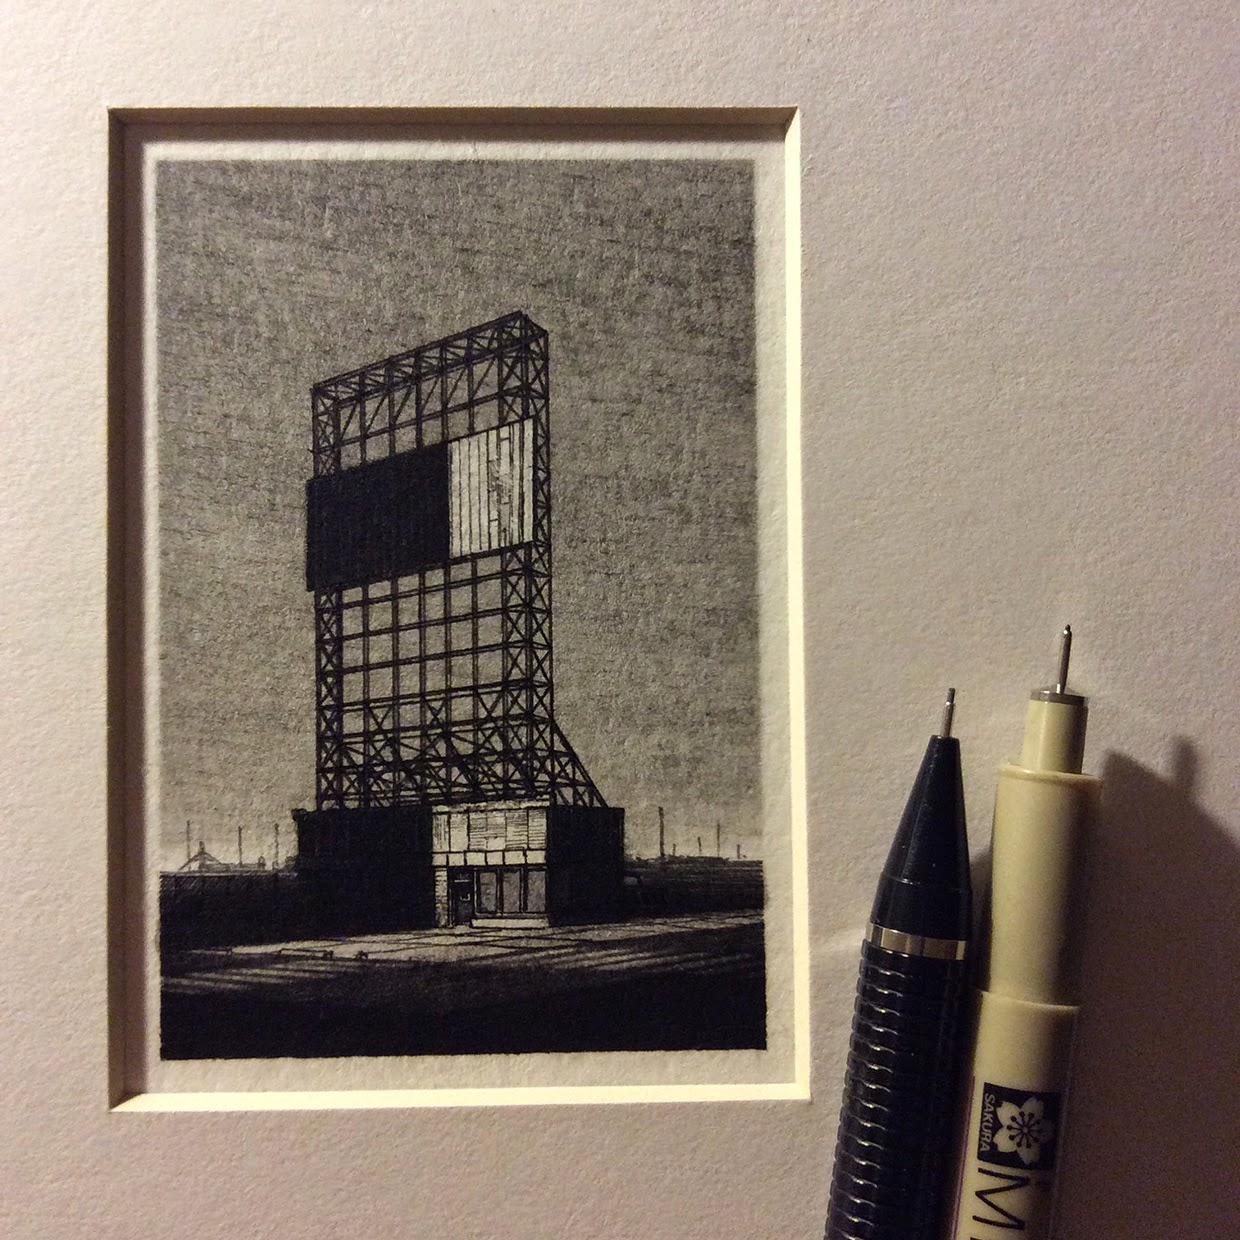 03-Taylor-Mazerhas-Miniature-Pencil-and-Ink-Drawings-with-a-lot-of-Detail-www-designstack-co